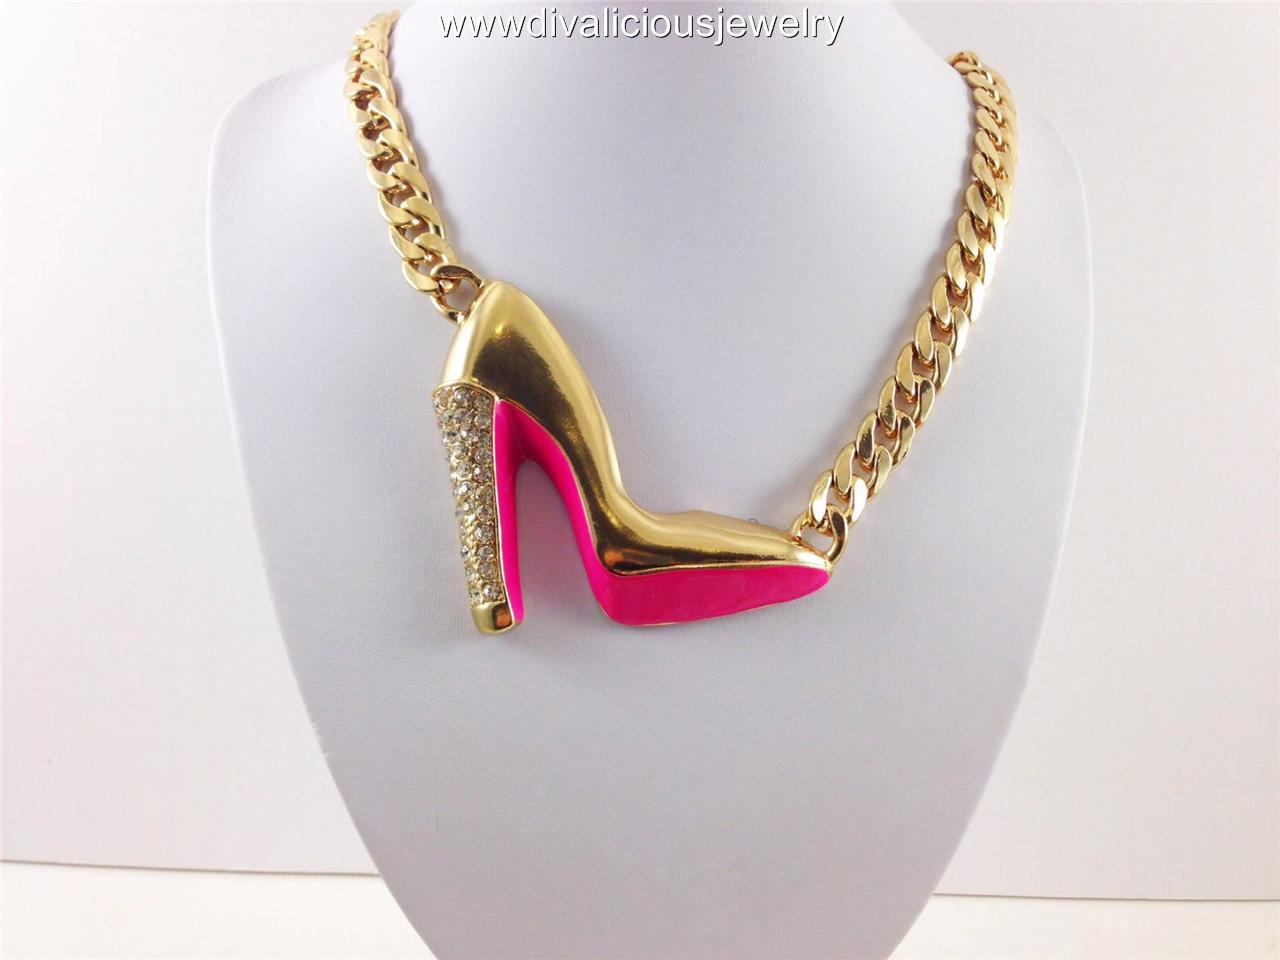 Crystal Heel Stiletto Bling Diva Necklace - 3 Colors